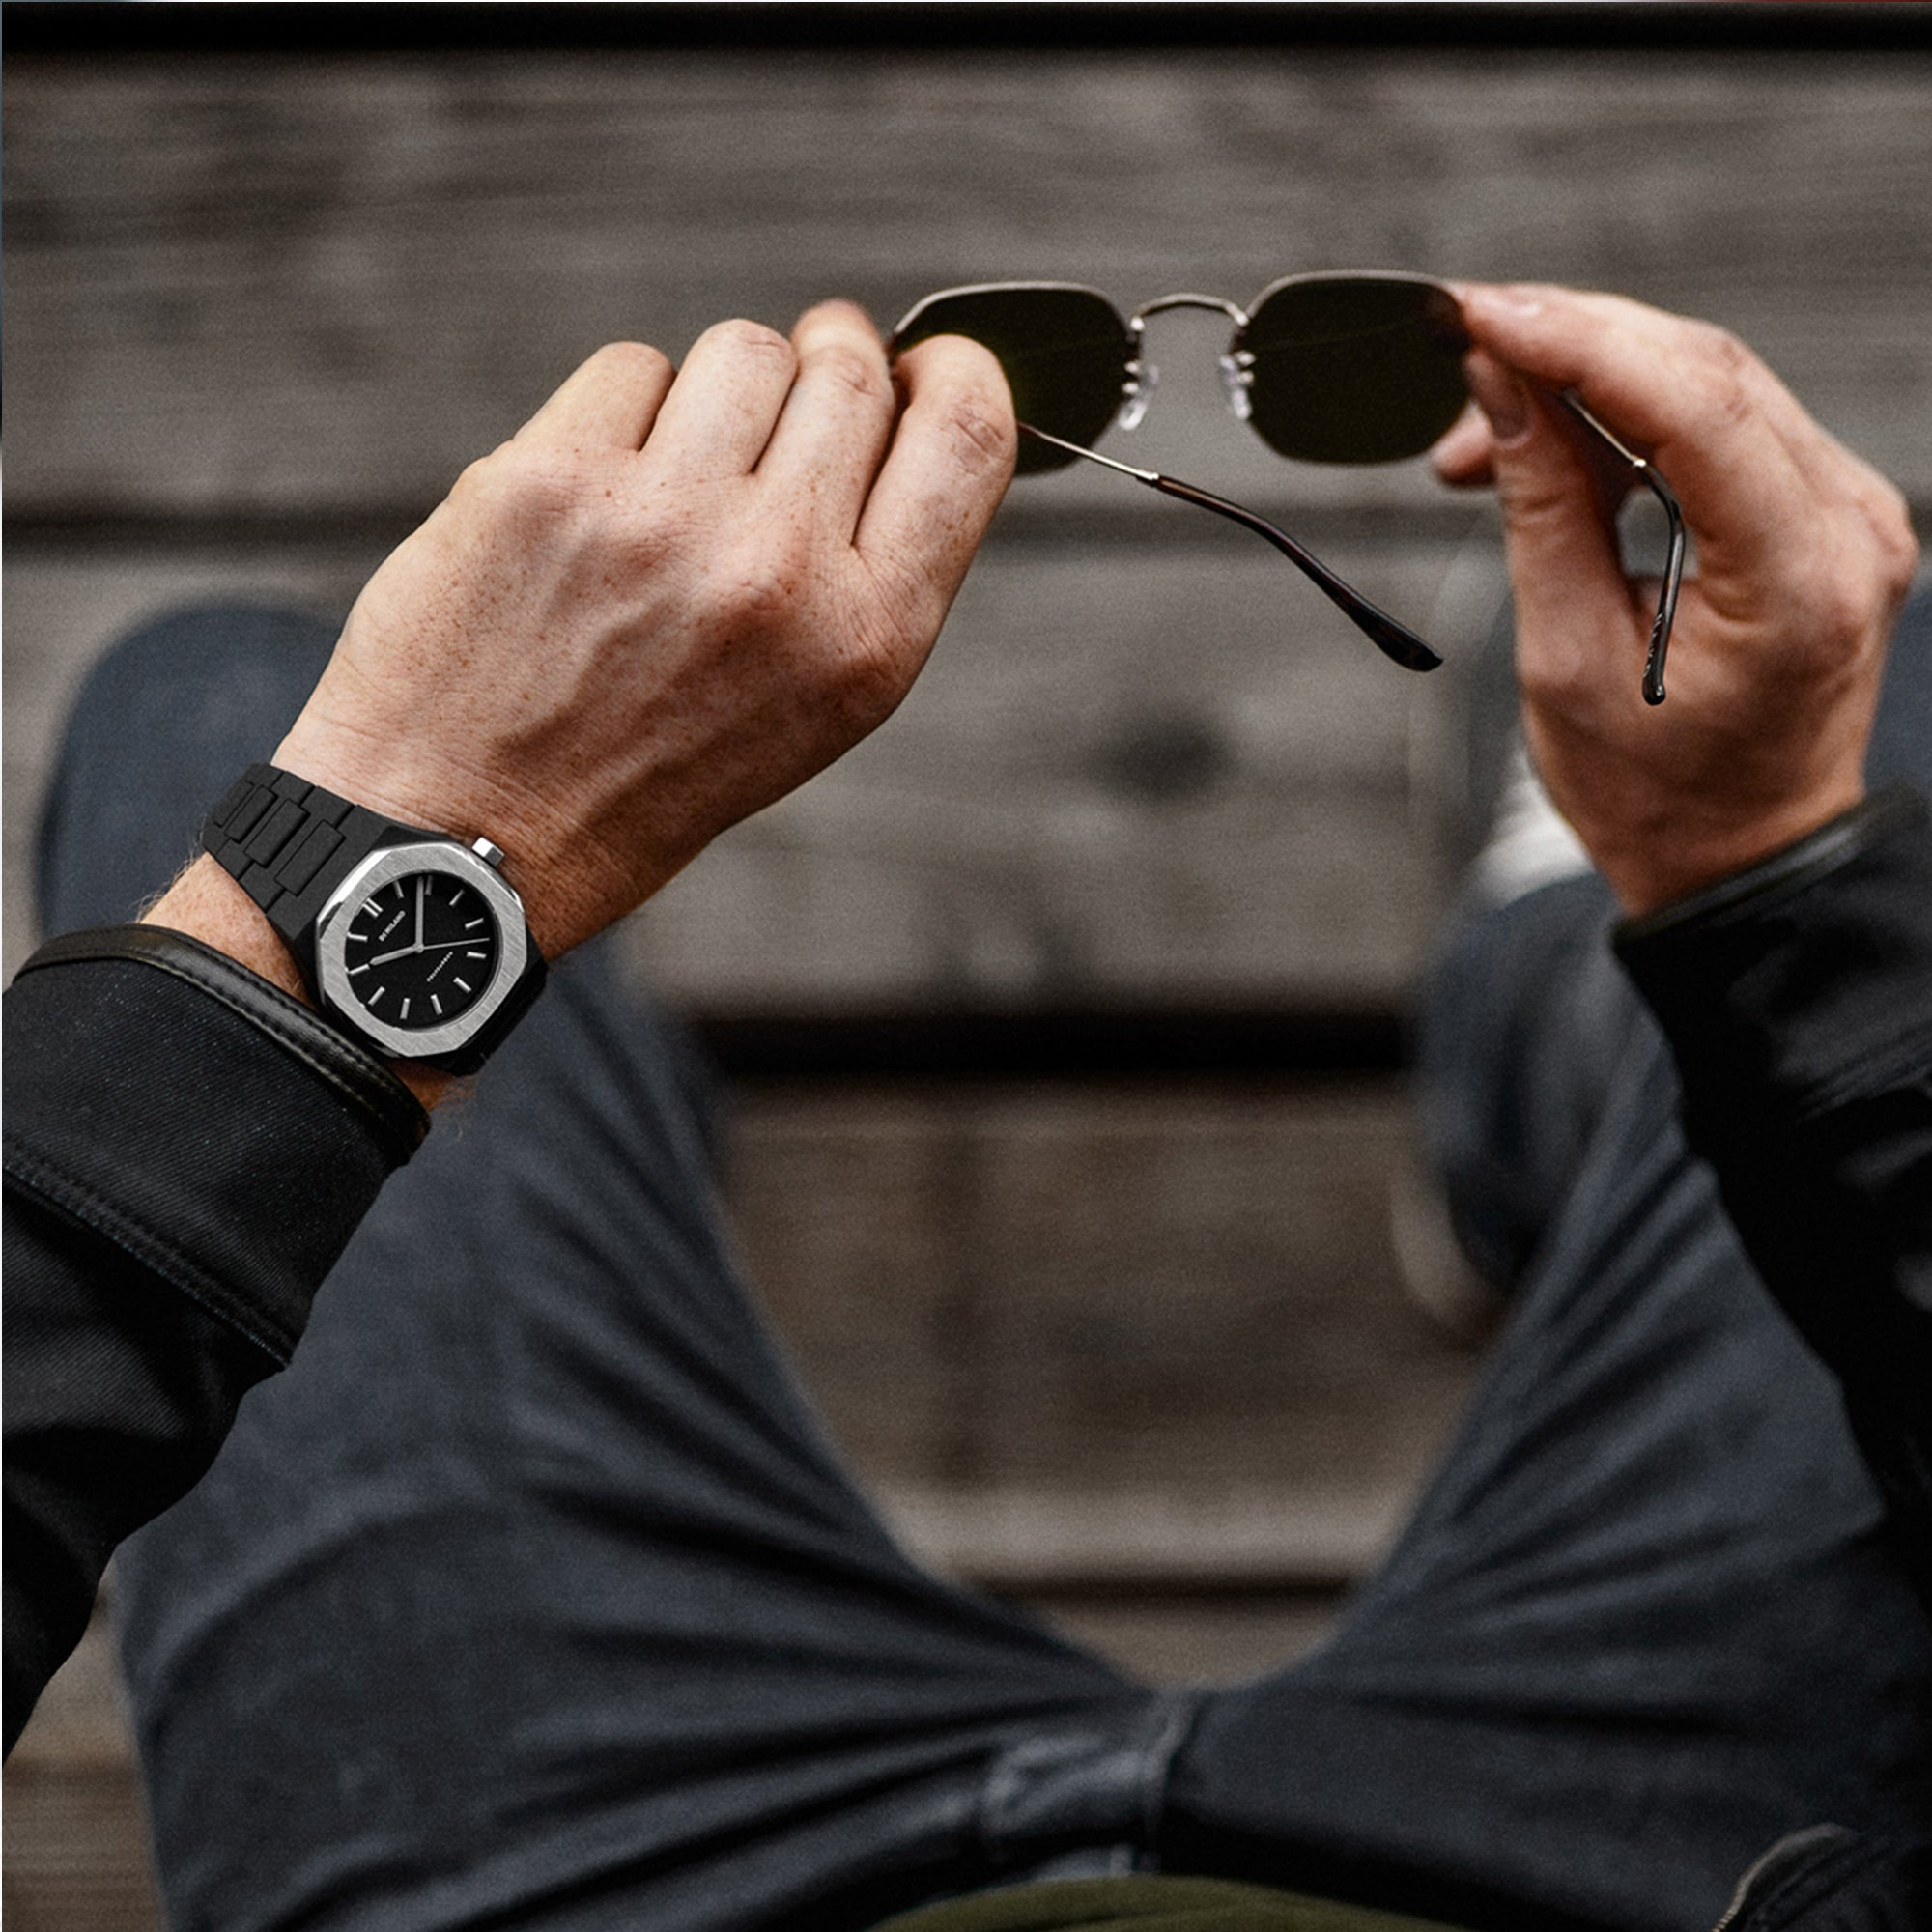 D1 Milano Watches | Wear your attitude